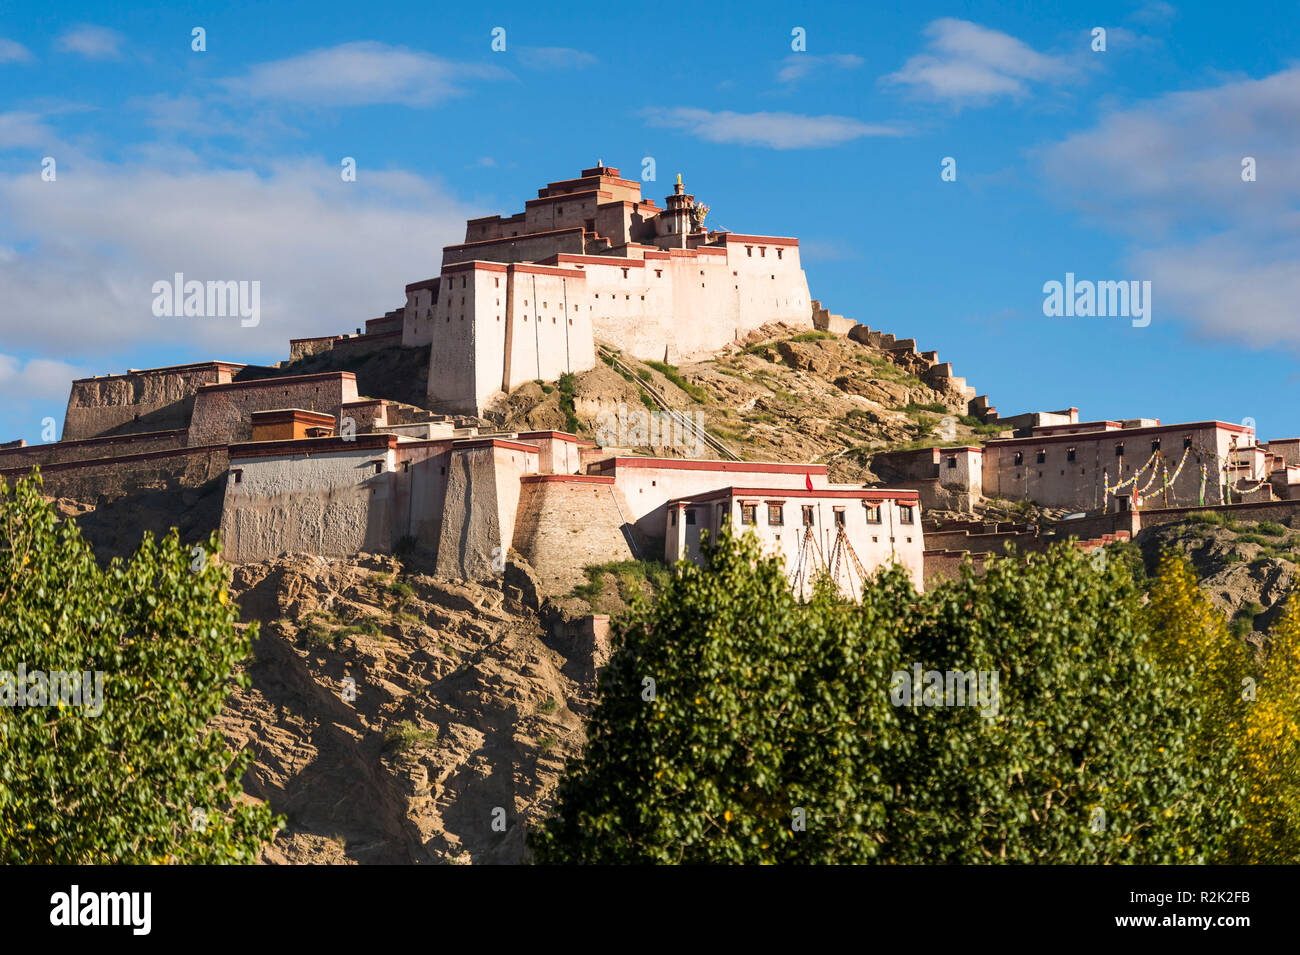 Gyantse, the fortification Dzong - Stock Image